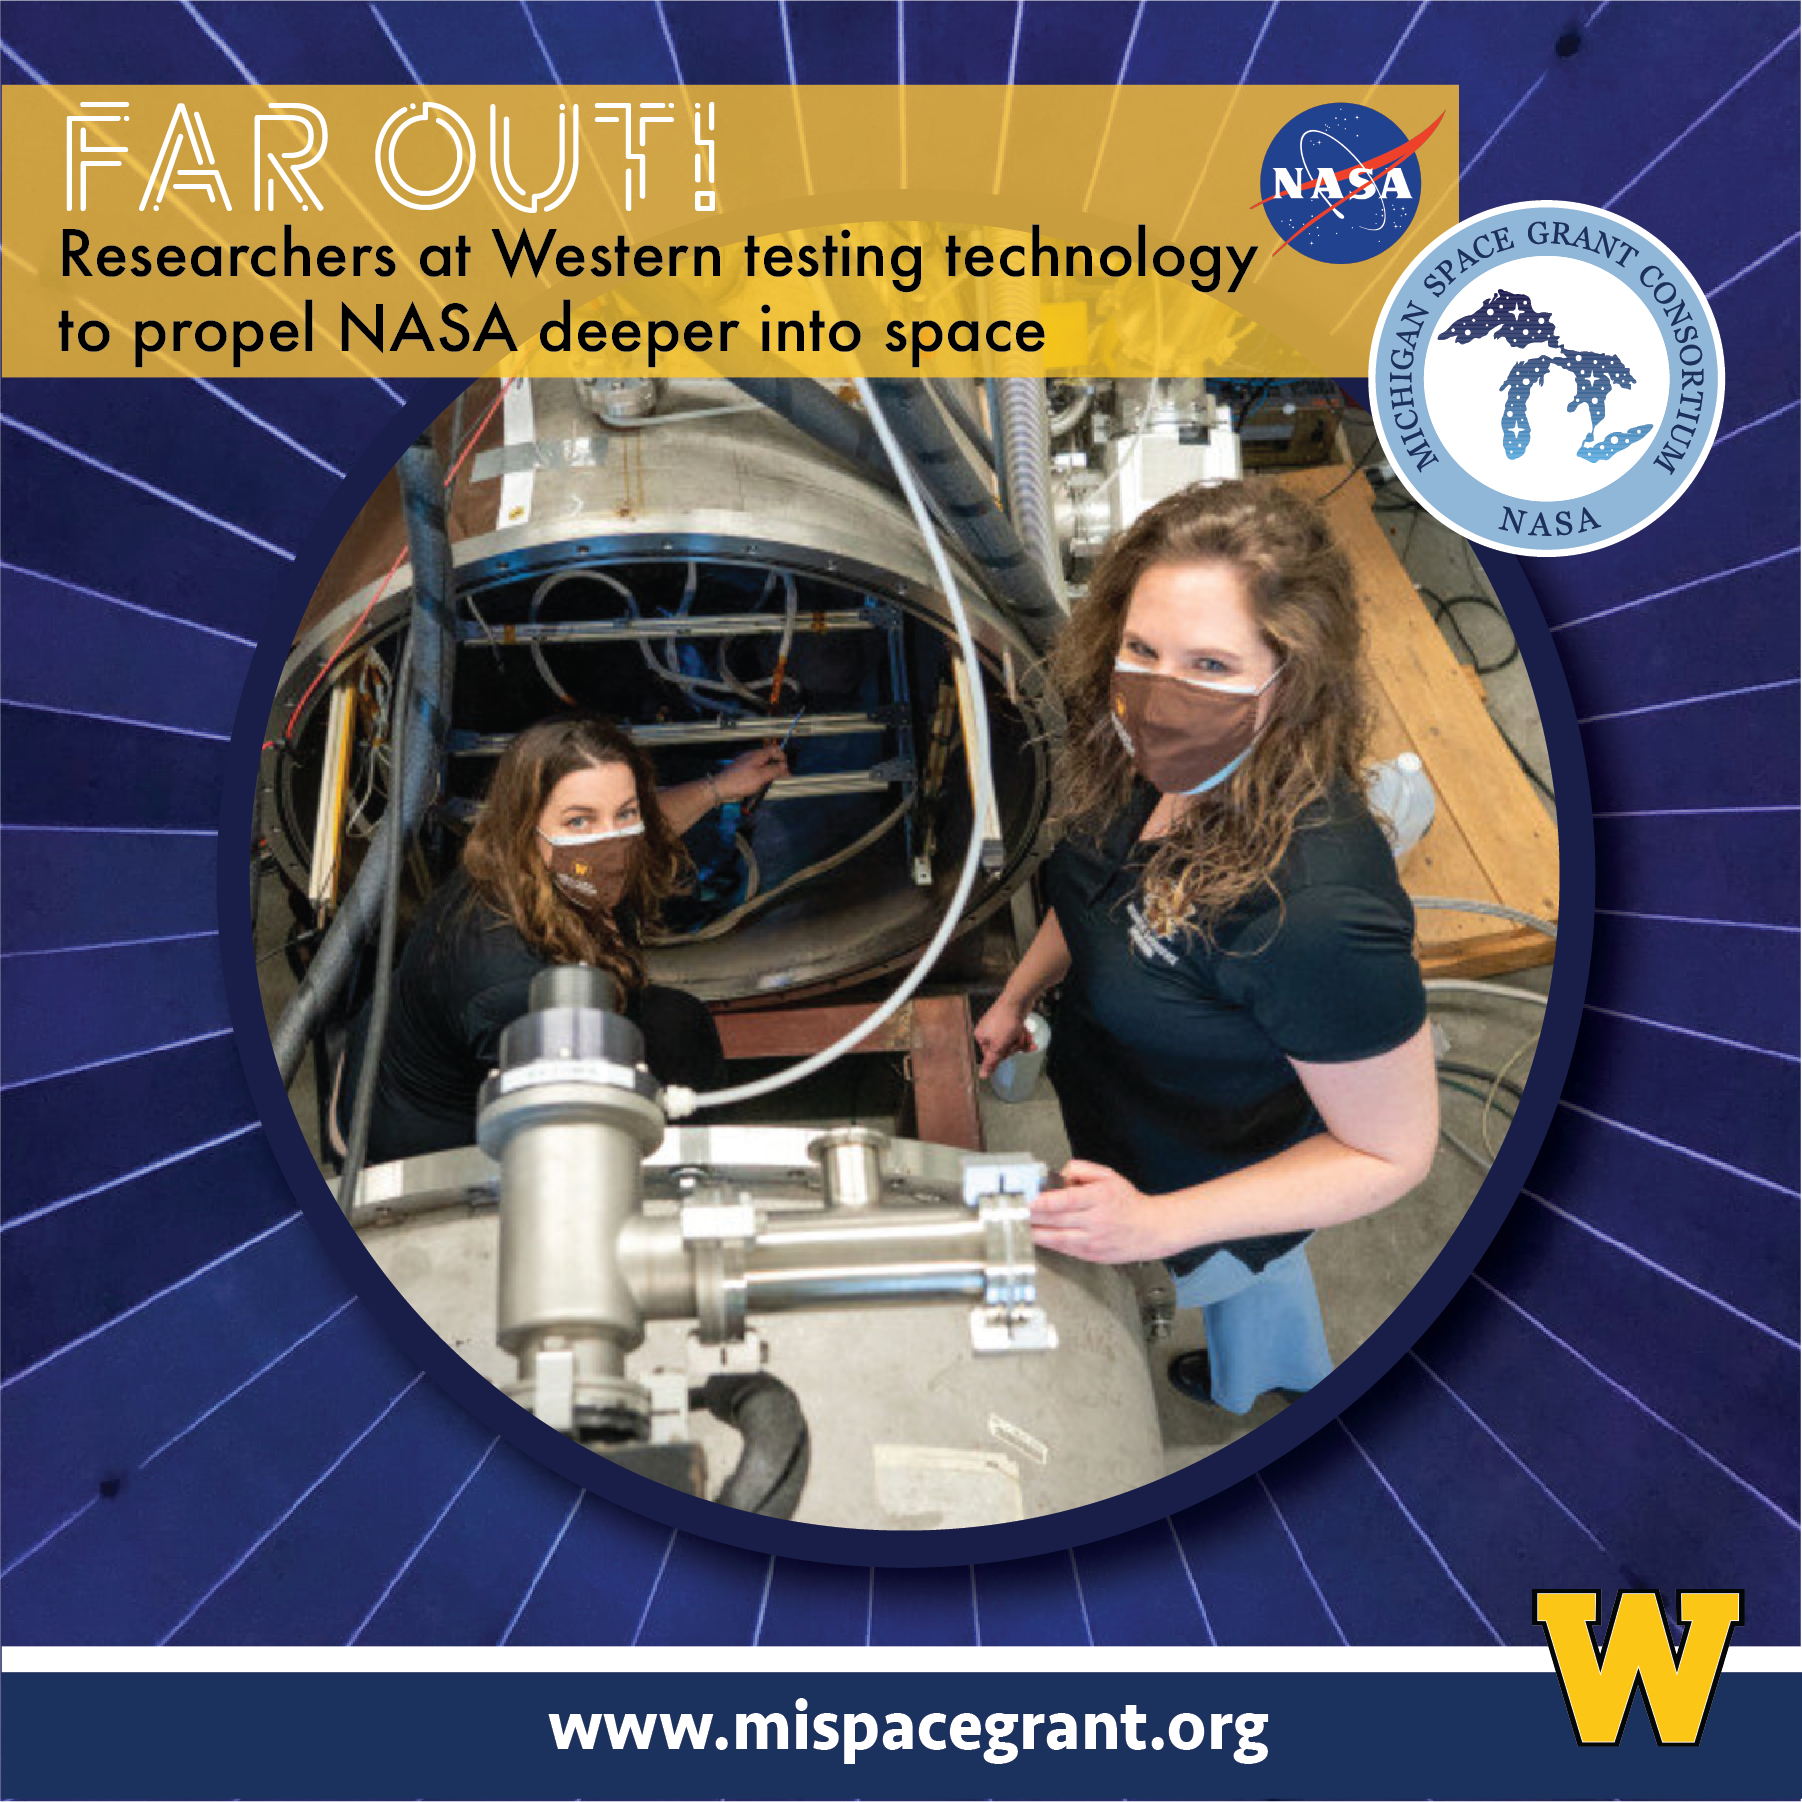 Margaret Mooney, left, and Dr. Kristina Lemmer stand with a vacuum chamber in Lemmer's lab. The device is used to simulate the conditions in space.